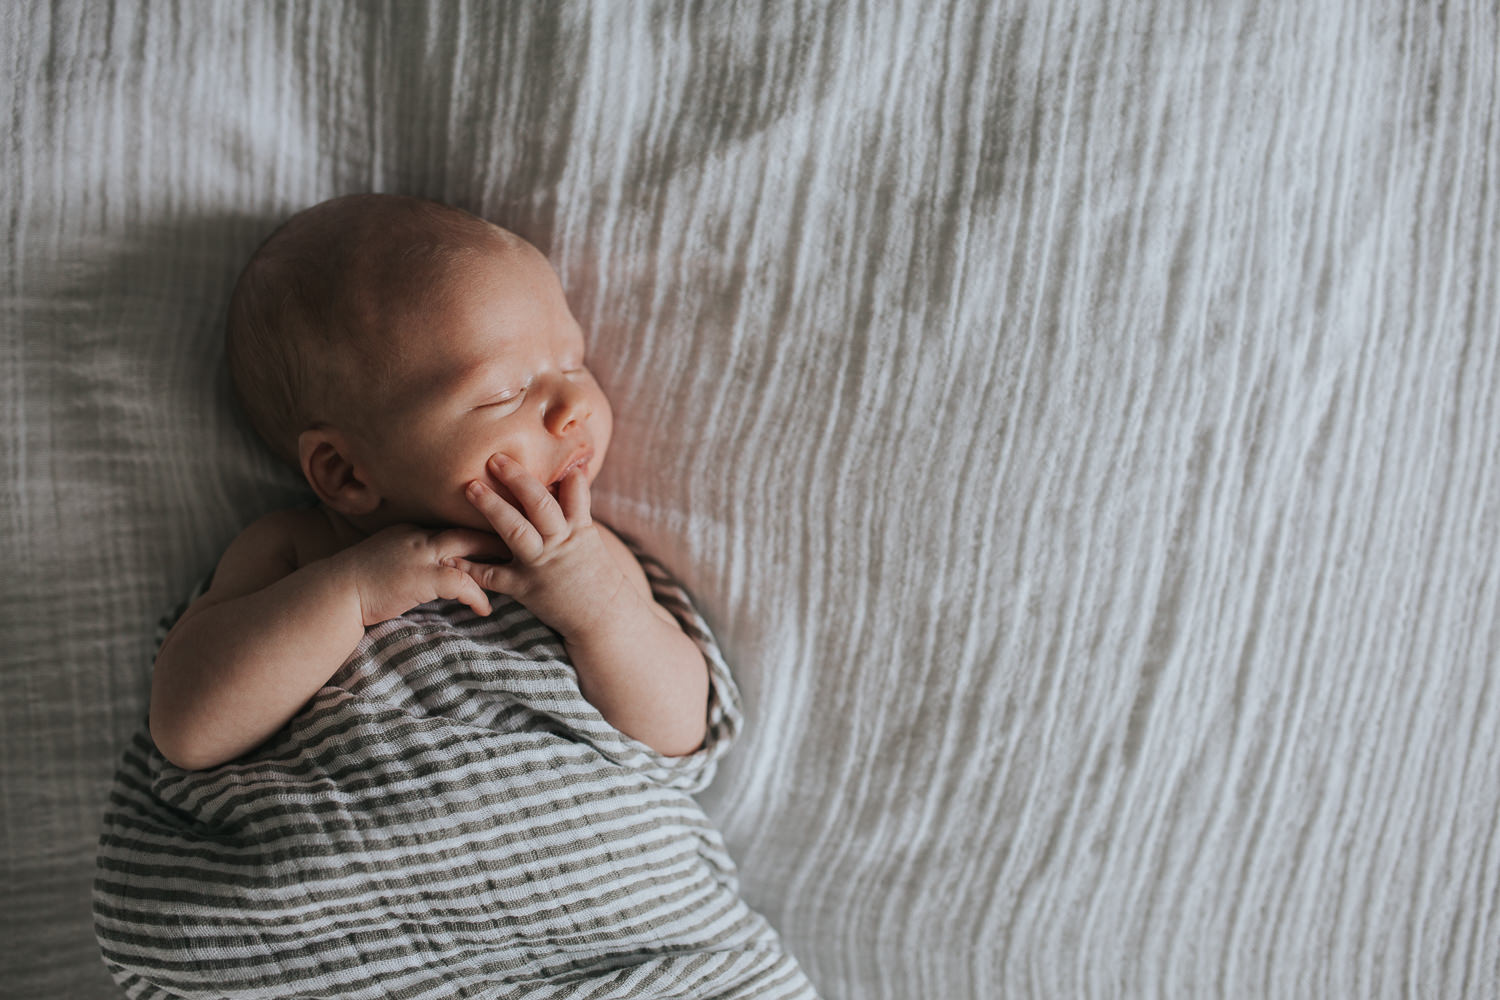 2 week old baby boy asleep, lying on bed in striped neutral swaddle with hand in mouth - Markham lifestyle photography